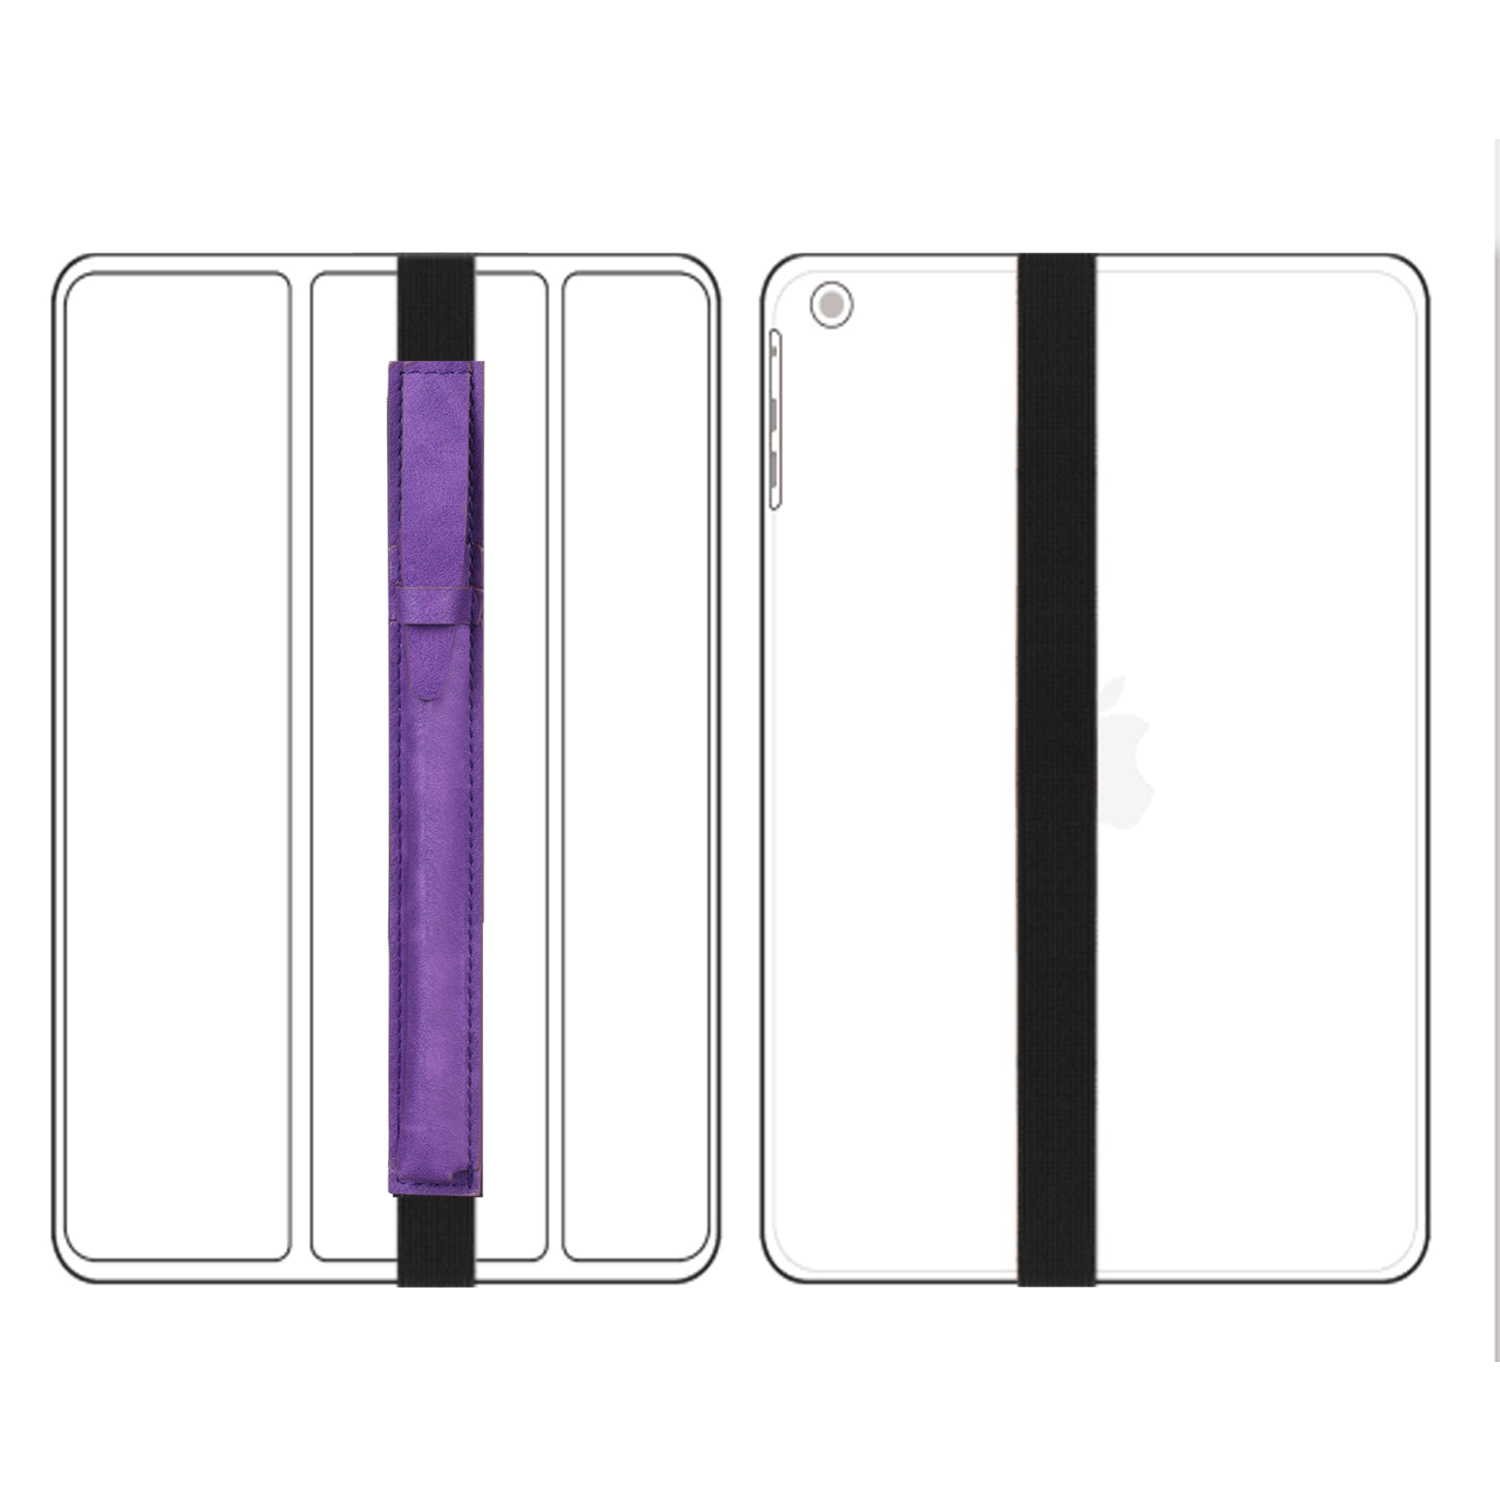 For-Apple-Pencil-Case-Leather-iPad-Pen-Cover-Sleeve-Pouch-Bag-Holder-Protector thumbnail 25